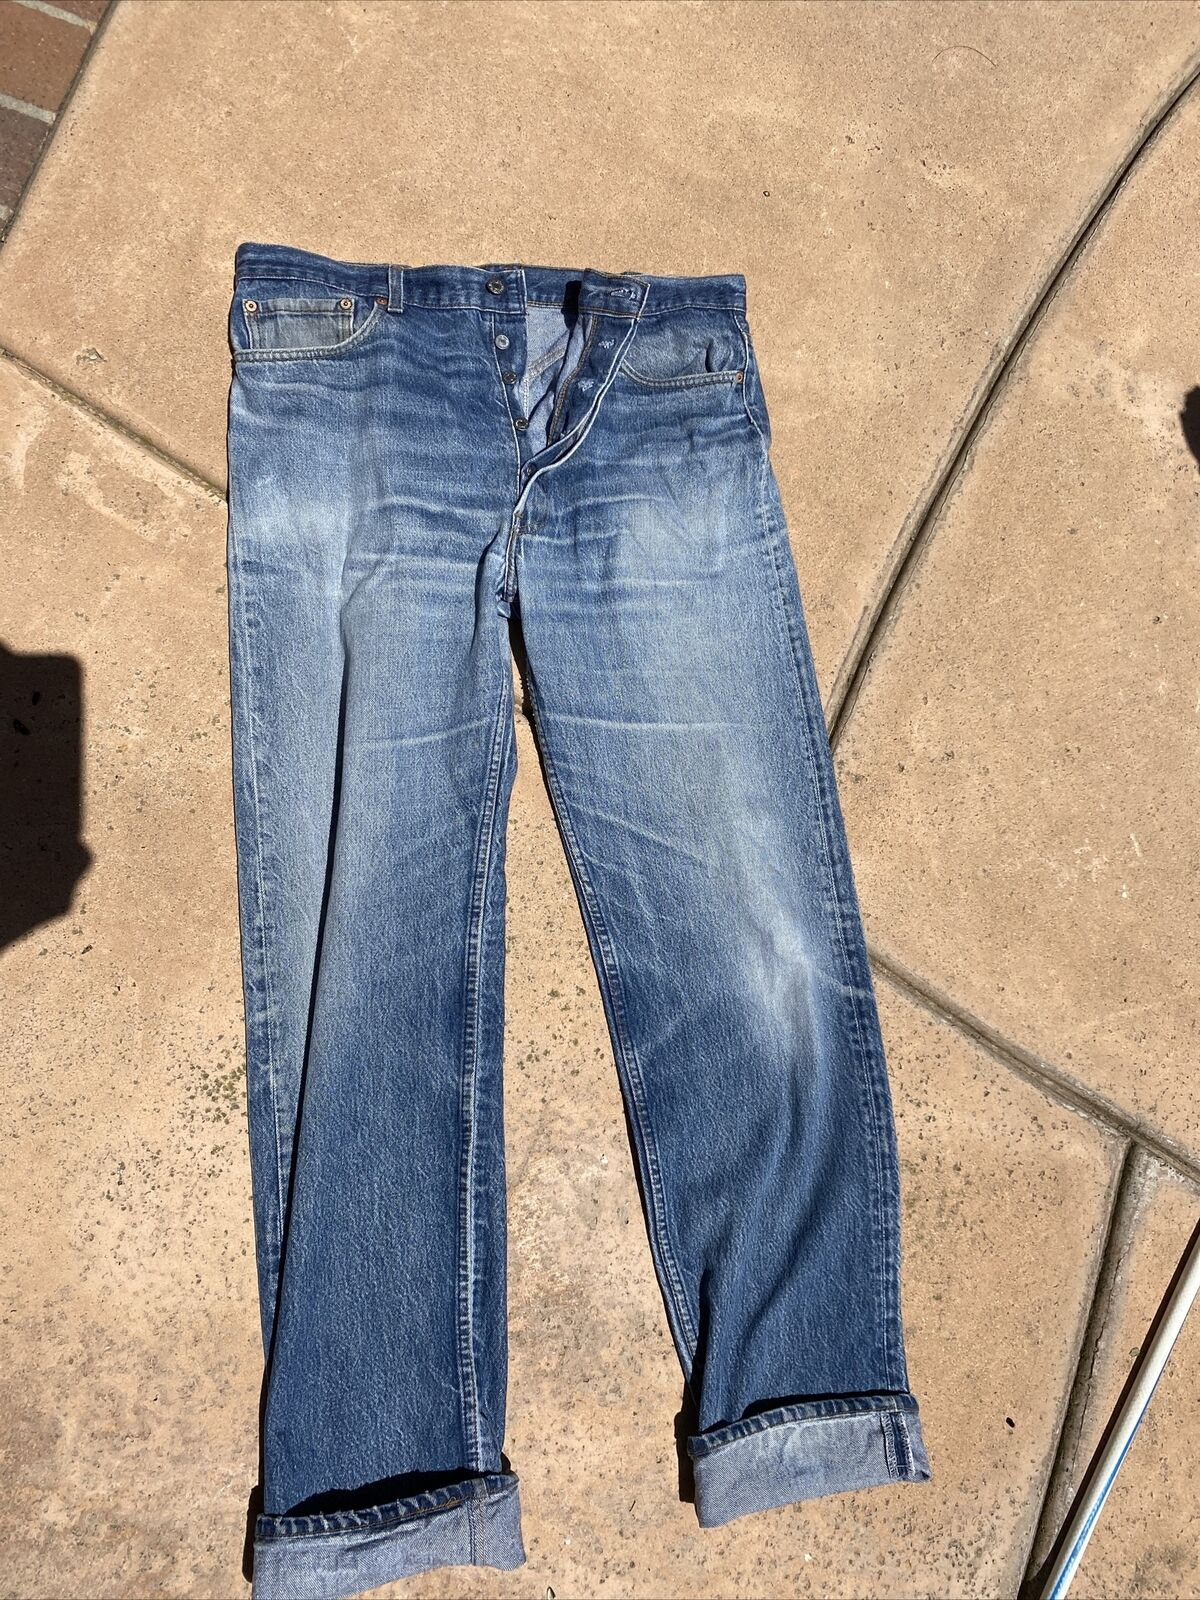 vintage levis jeans 501 made in usa  - image 2